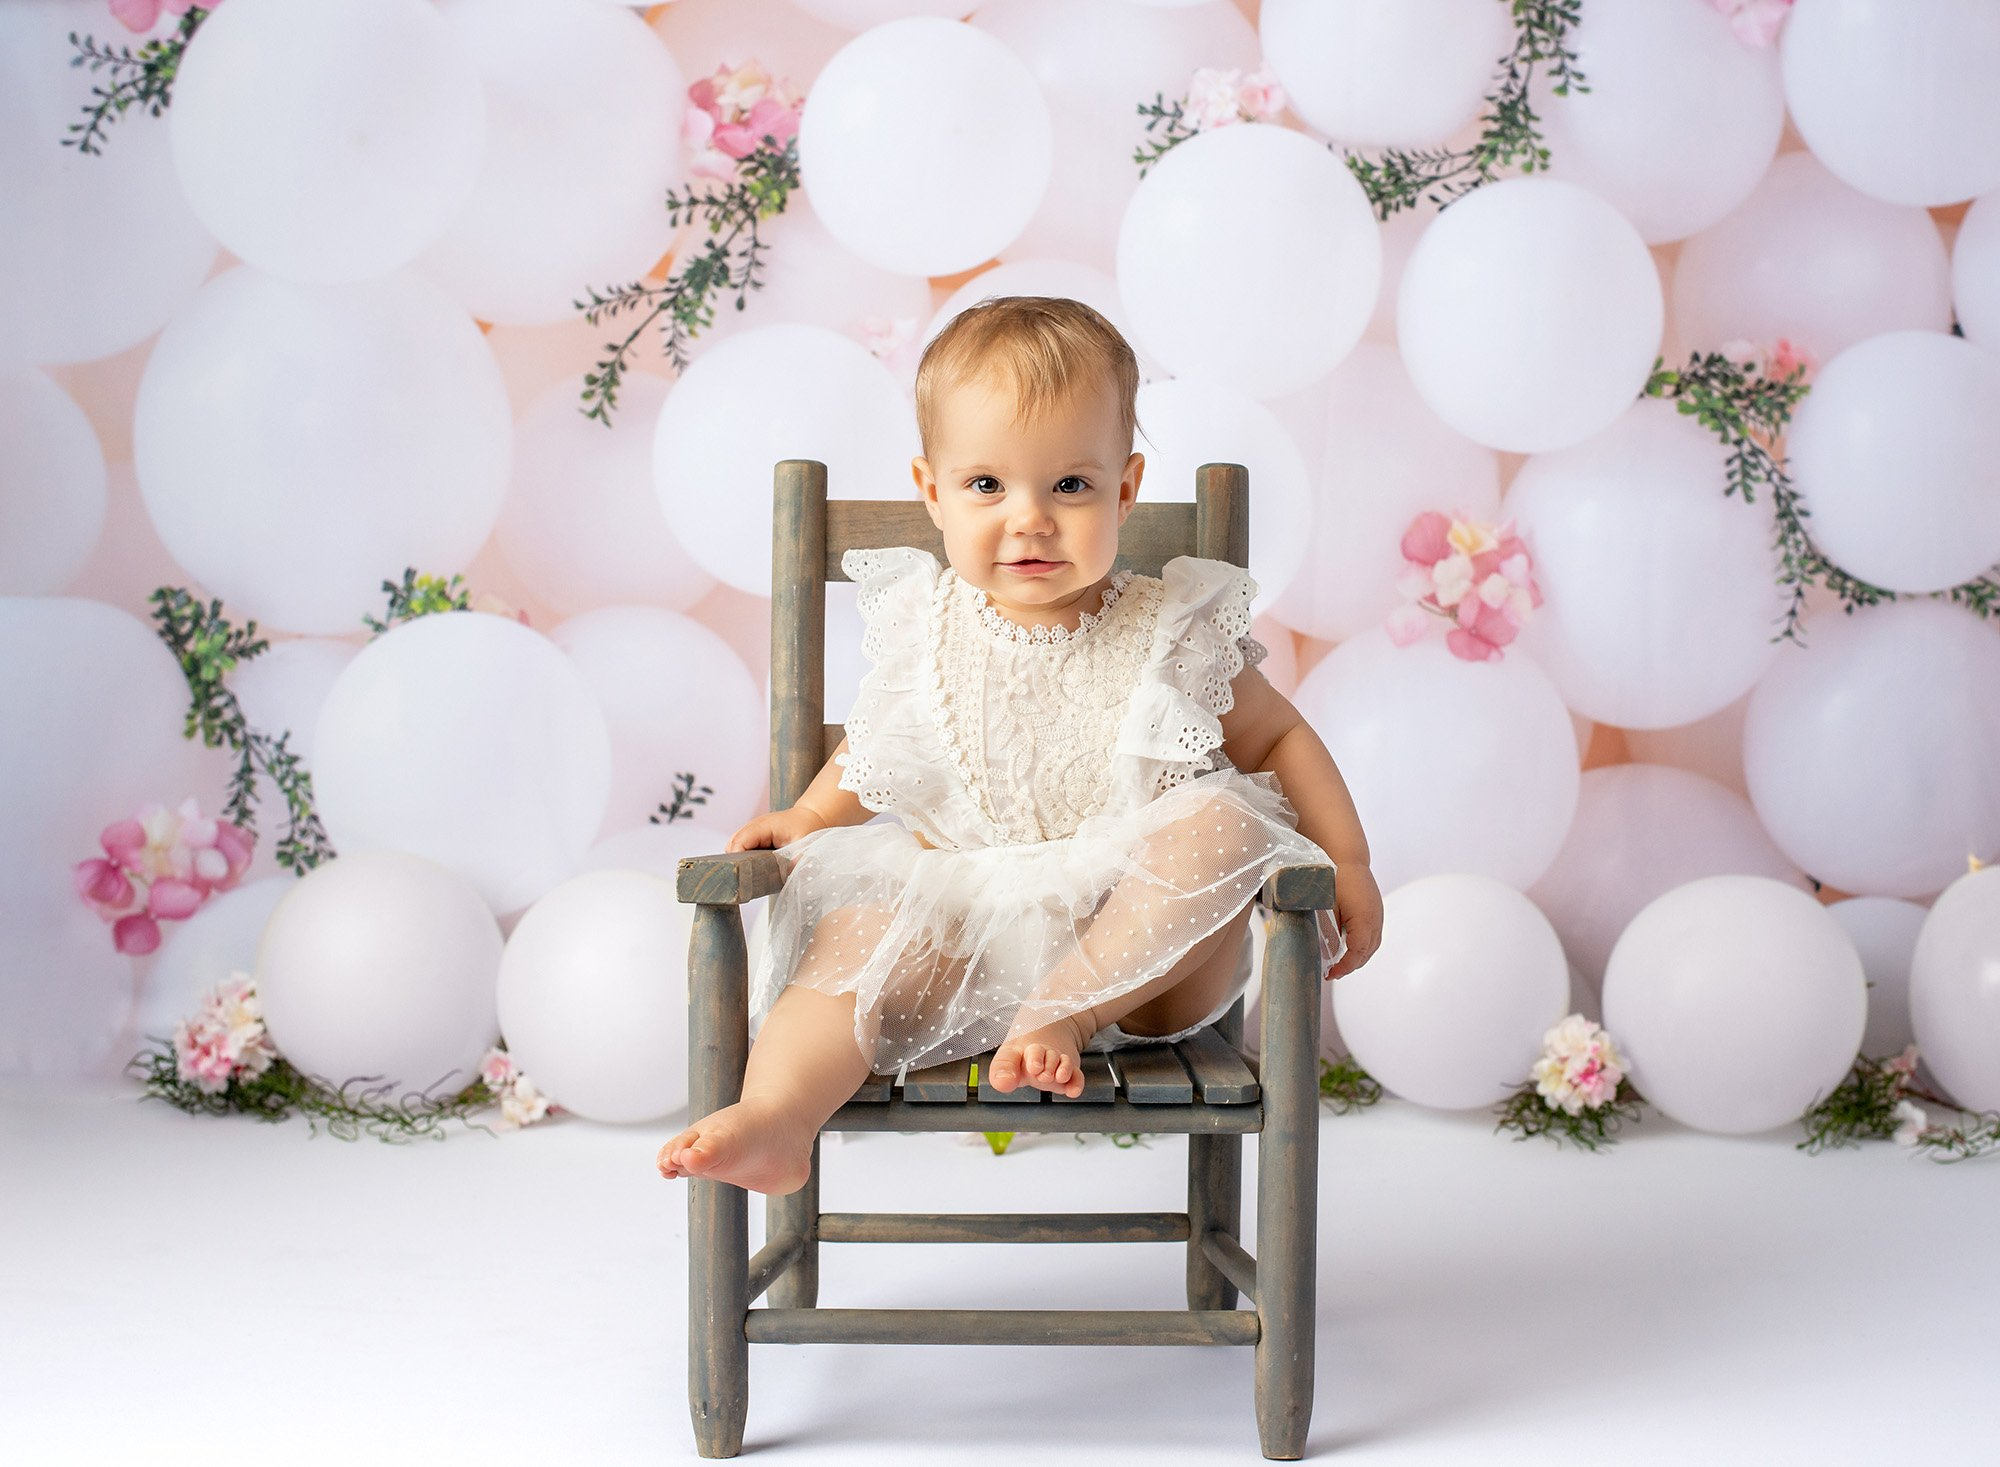 1 year baby photoshoot brown eyed one year old girl wearing white lace dress sitting on rustic chair with white balloons in background